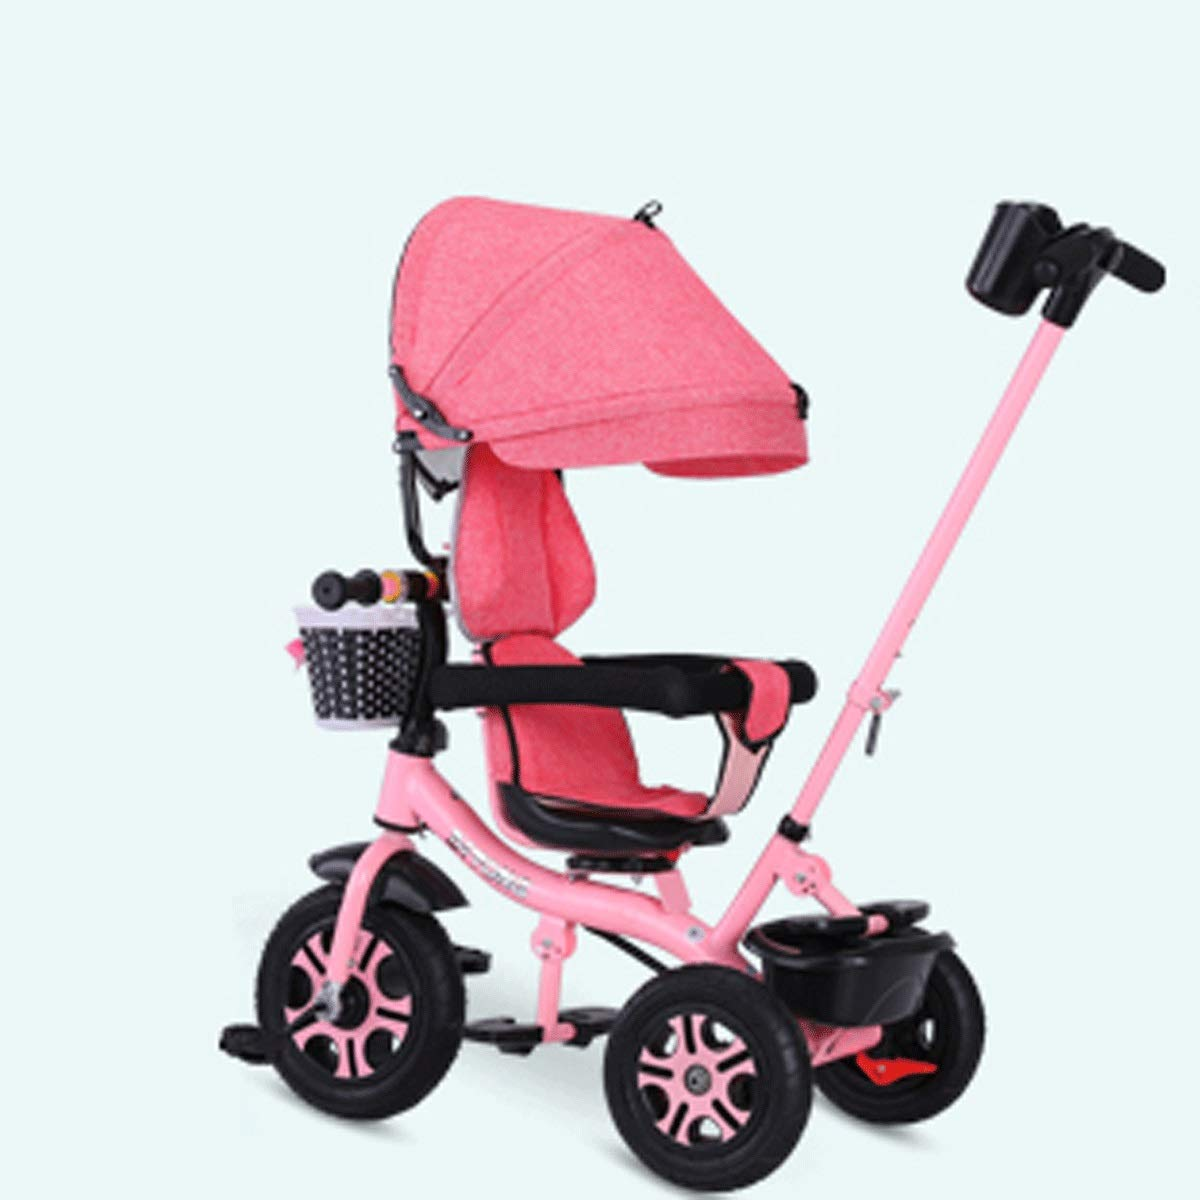 Baianju Children's Tricycle Trolley Multi-Function Out-of-The-Box Car Pushable Mounts Folding Children's Tricycle